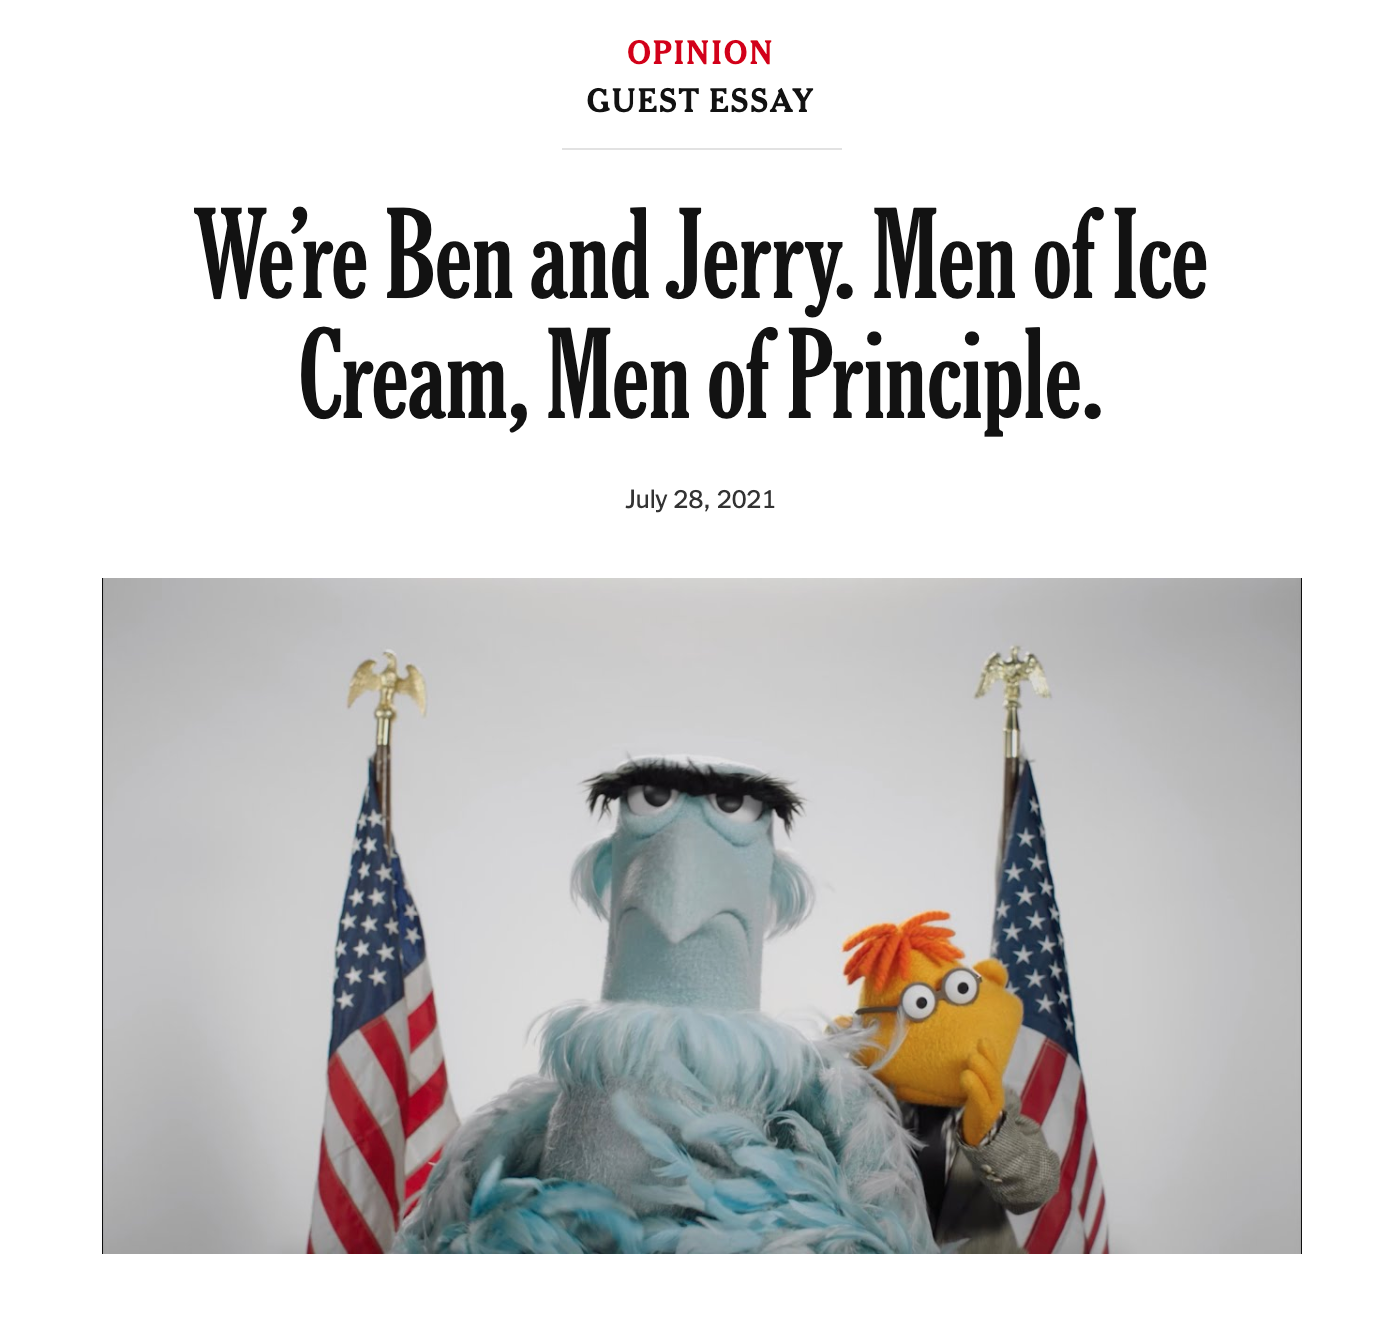 """Mockup of the title and hero image of a NY Times guest essay titled """"We're Ben and Jerry. Men of Ice Cream, Men of Principle."""" with an mage of Muppets Sam the Eagle and Scooter."""